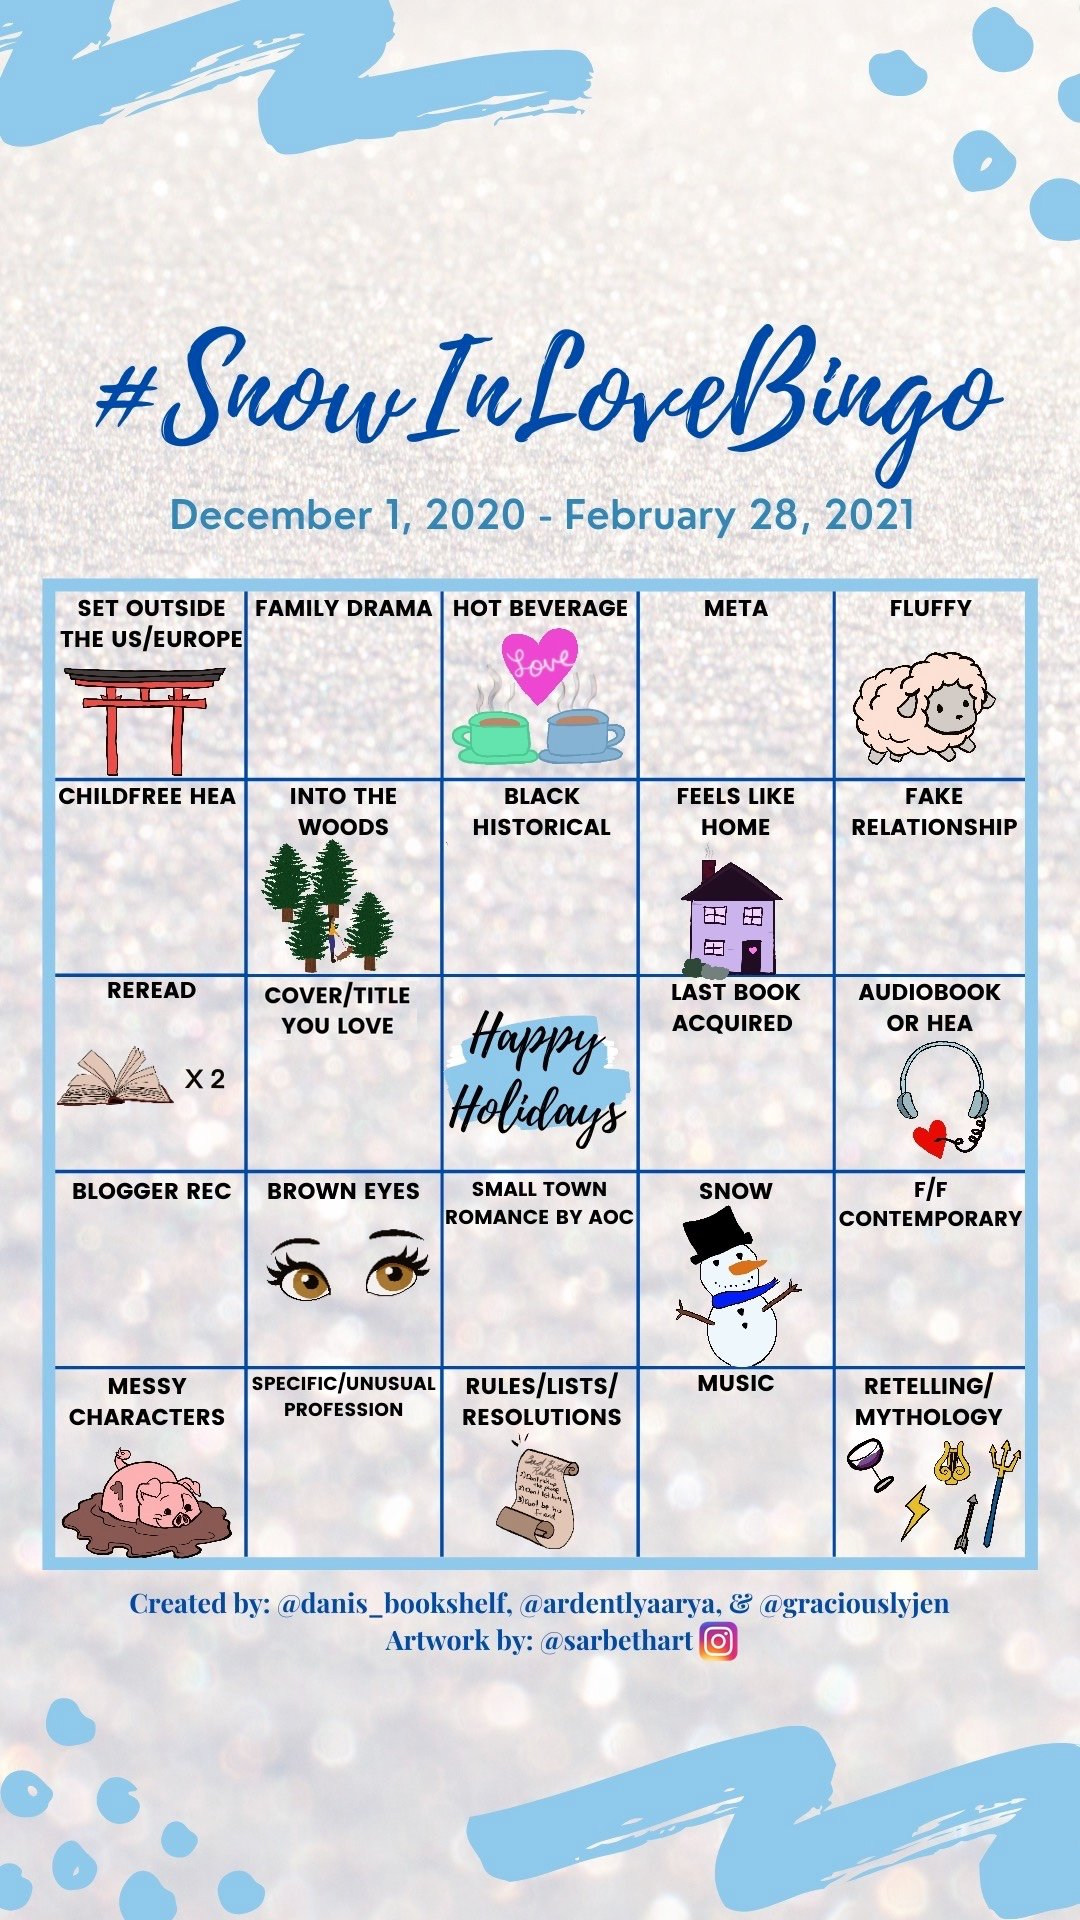 #SnowInLoveBingo: December 1, 2020 - February 28, 2021. Row One: Set Outside of the US/Europe, Family Drama, Hot Beverage, Meta, and Fluffy. Row Two: Childfree HEA, Into the Woods, Black Historical, Feels Like Home, and Fake Relationship. Row Three: Reread, Cover/Title You Love, Happy Holidays!, Last Book Acquired, and Audiobook or HEA. Row Four: Blogger Recommendation, Brown Eyes, Small Town Romance by AOC, Snow, F/F Contemporary. Row Five: Messy Characters, Specific/Unusual Profession, Rules/Lists/Resolutions, Music, Retelling/Mythology.